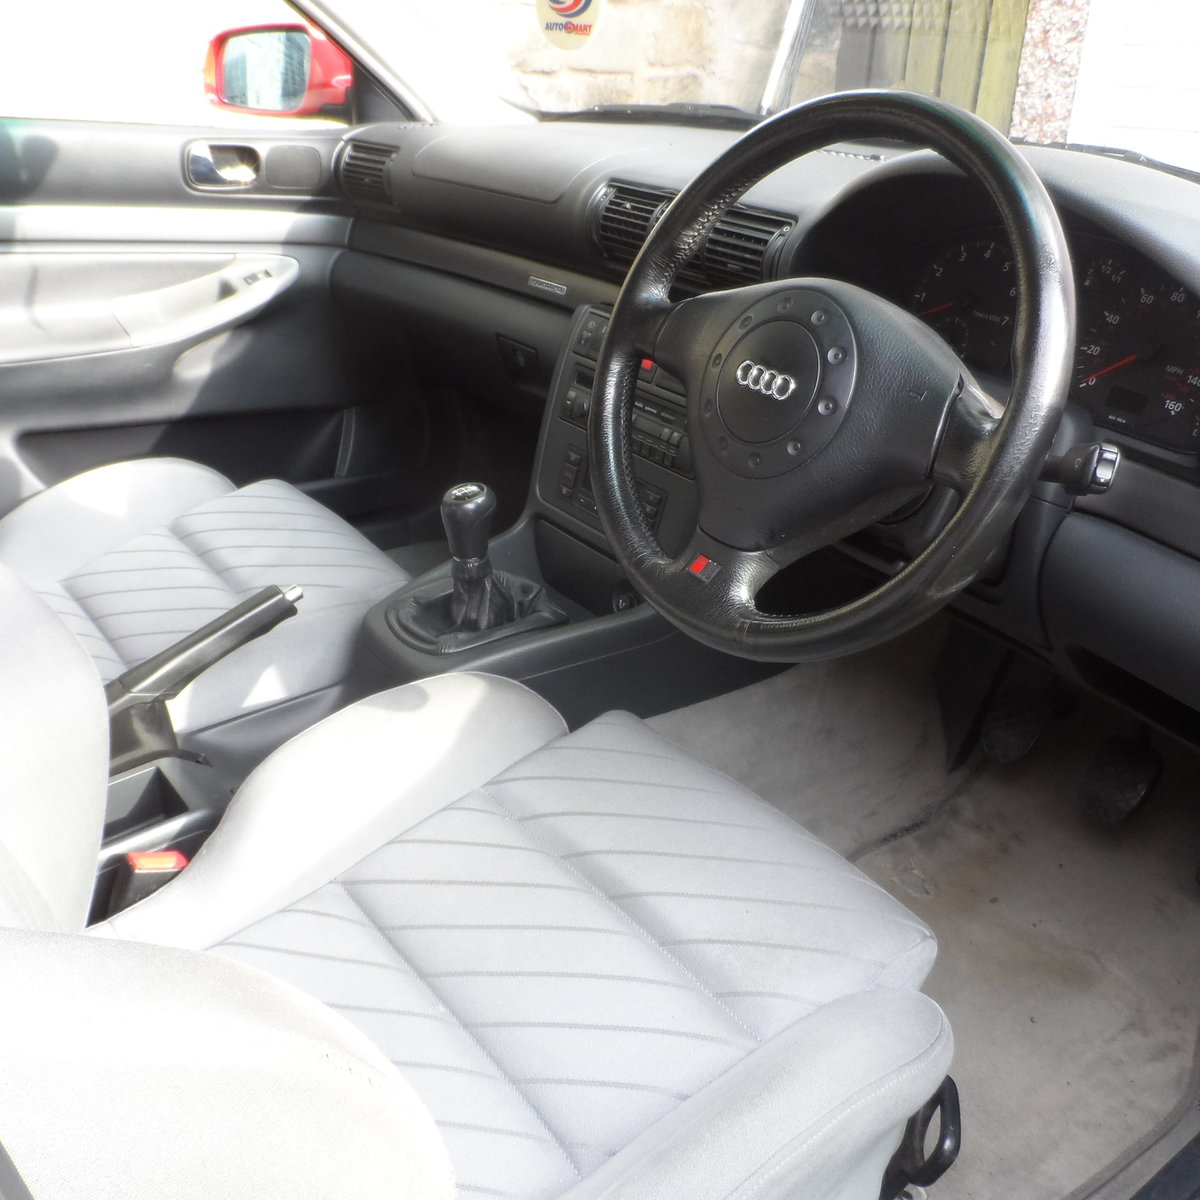 1997 A4 2.7 V6 Quattro - Petrol For Sale (picture 5 of 6)